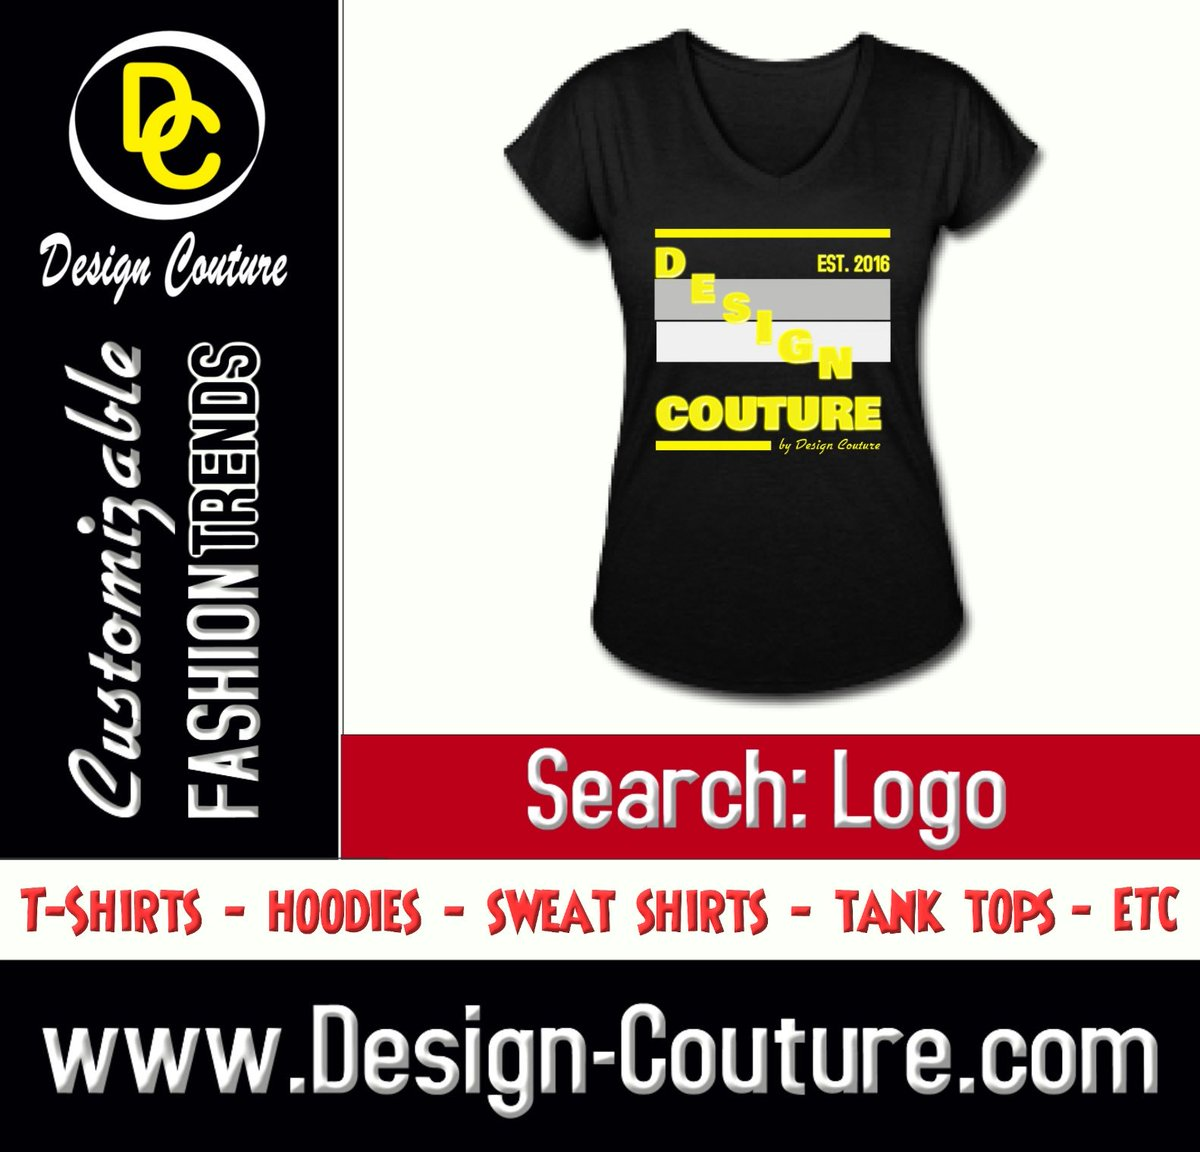 Make a Bold Fashion Statement with Design Couture Customizable Fashion Trends and More.  Design: Design Couture Search: Logo https://t.co/zE8vru9O9E ———————————————————- Order yours today. ———————————————————- New Designs Uploaded Daily! ———————————————————- https://t.co/odyzRvu82U